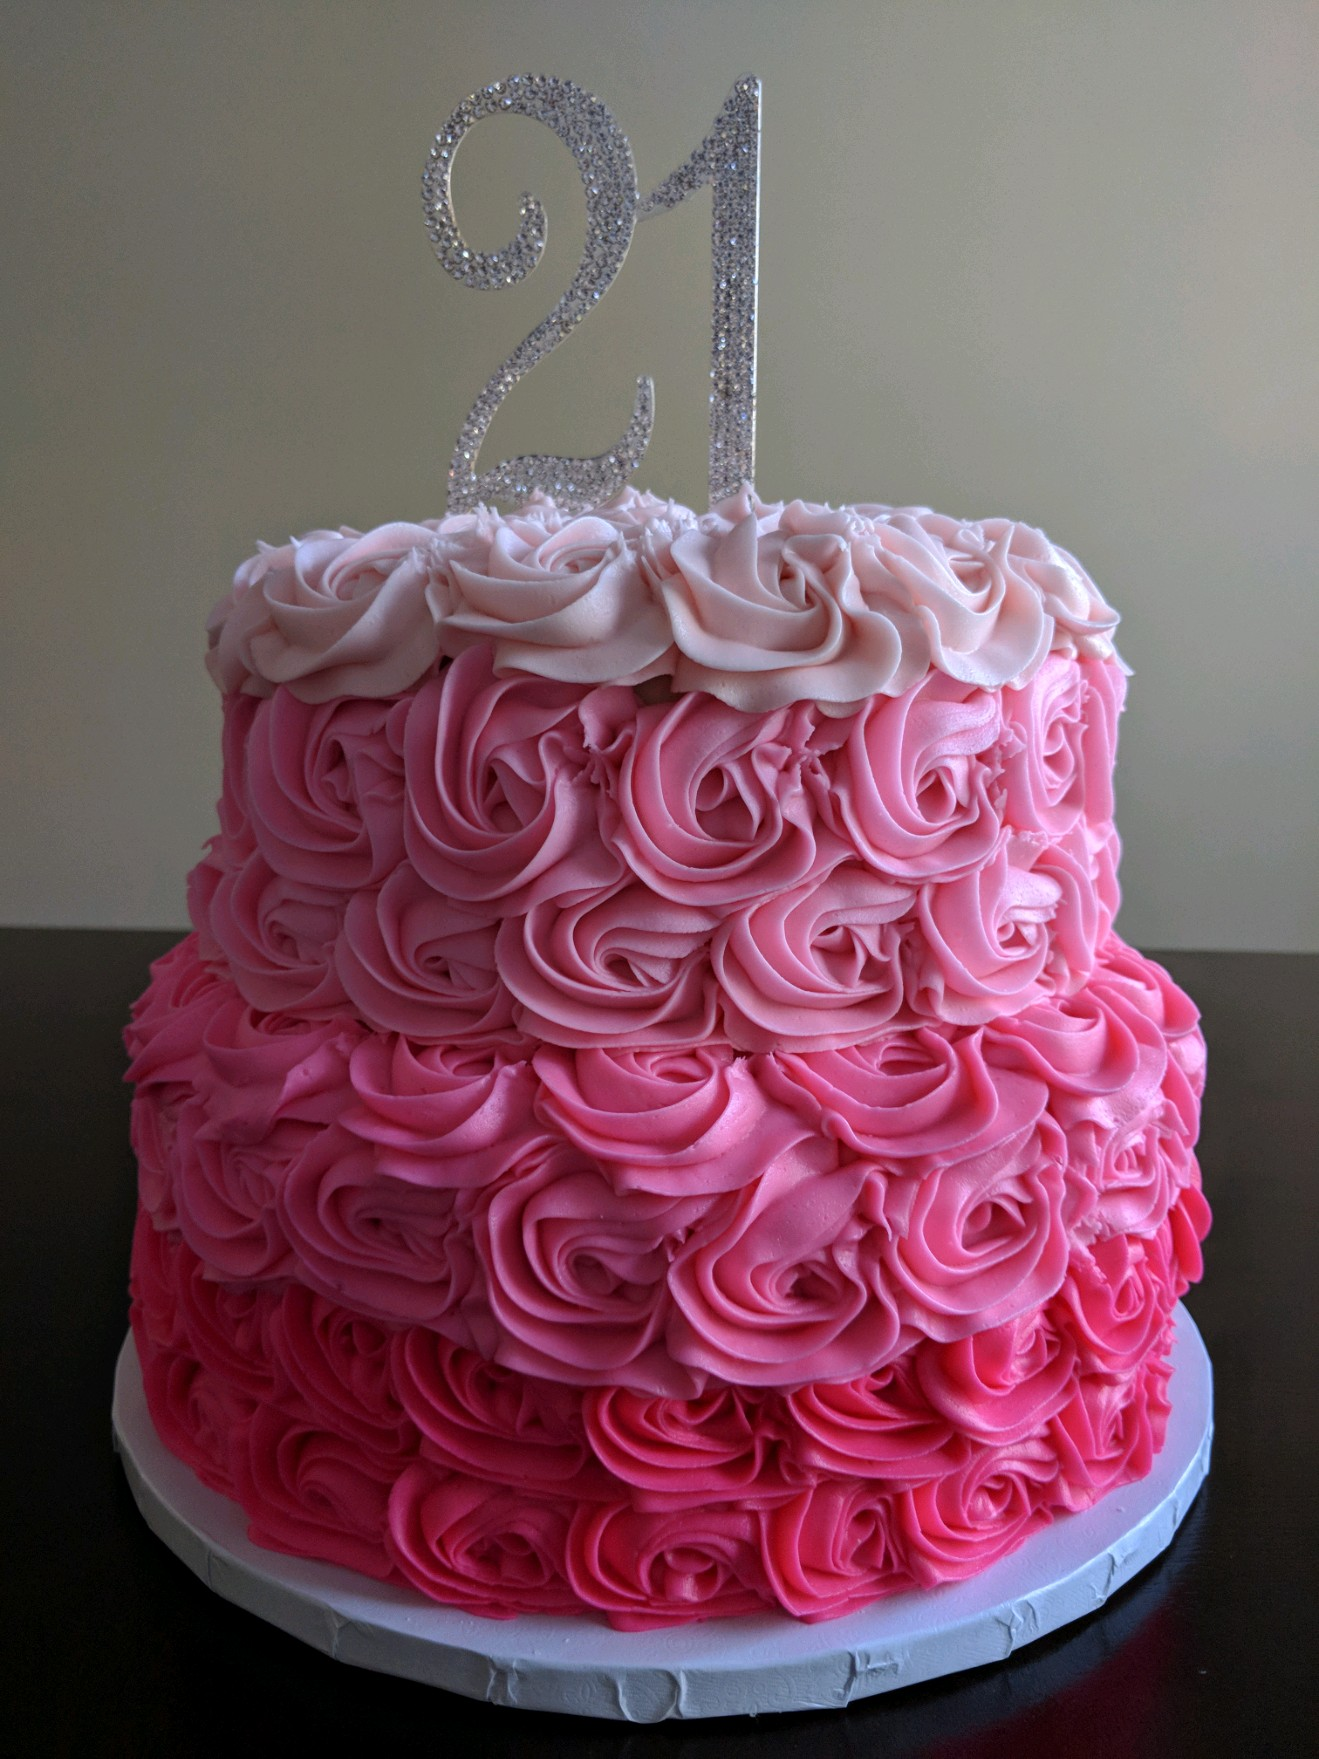 Tiered Rosette Cake